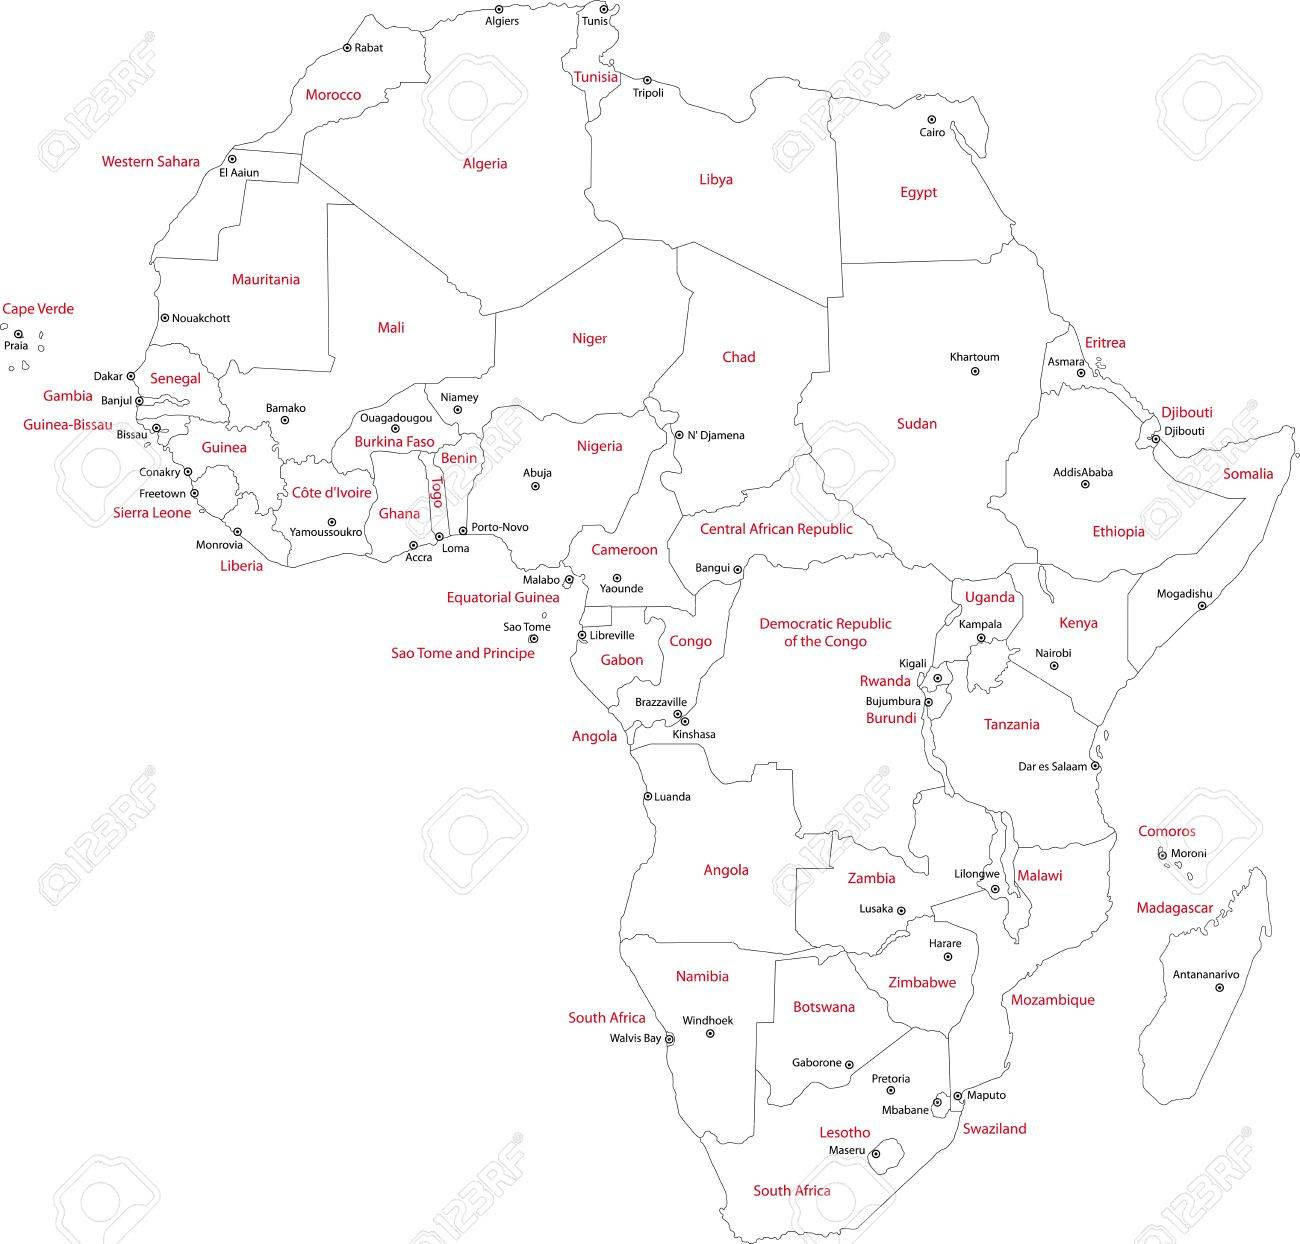 Africa Map With Countries And Capital Cities Royalty Free Cliparts - South africa map countries